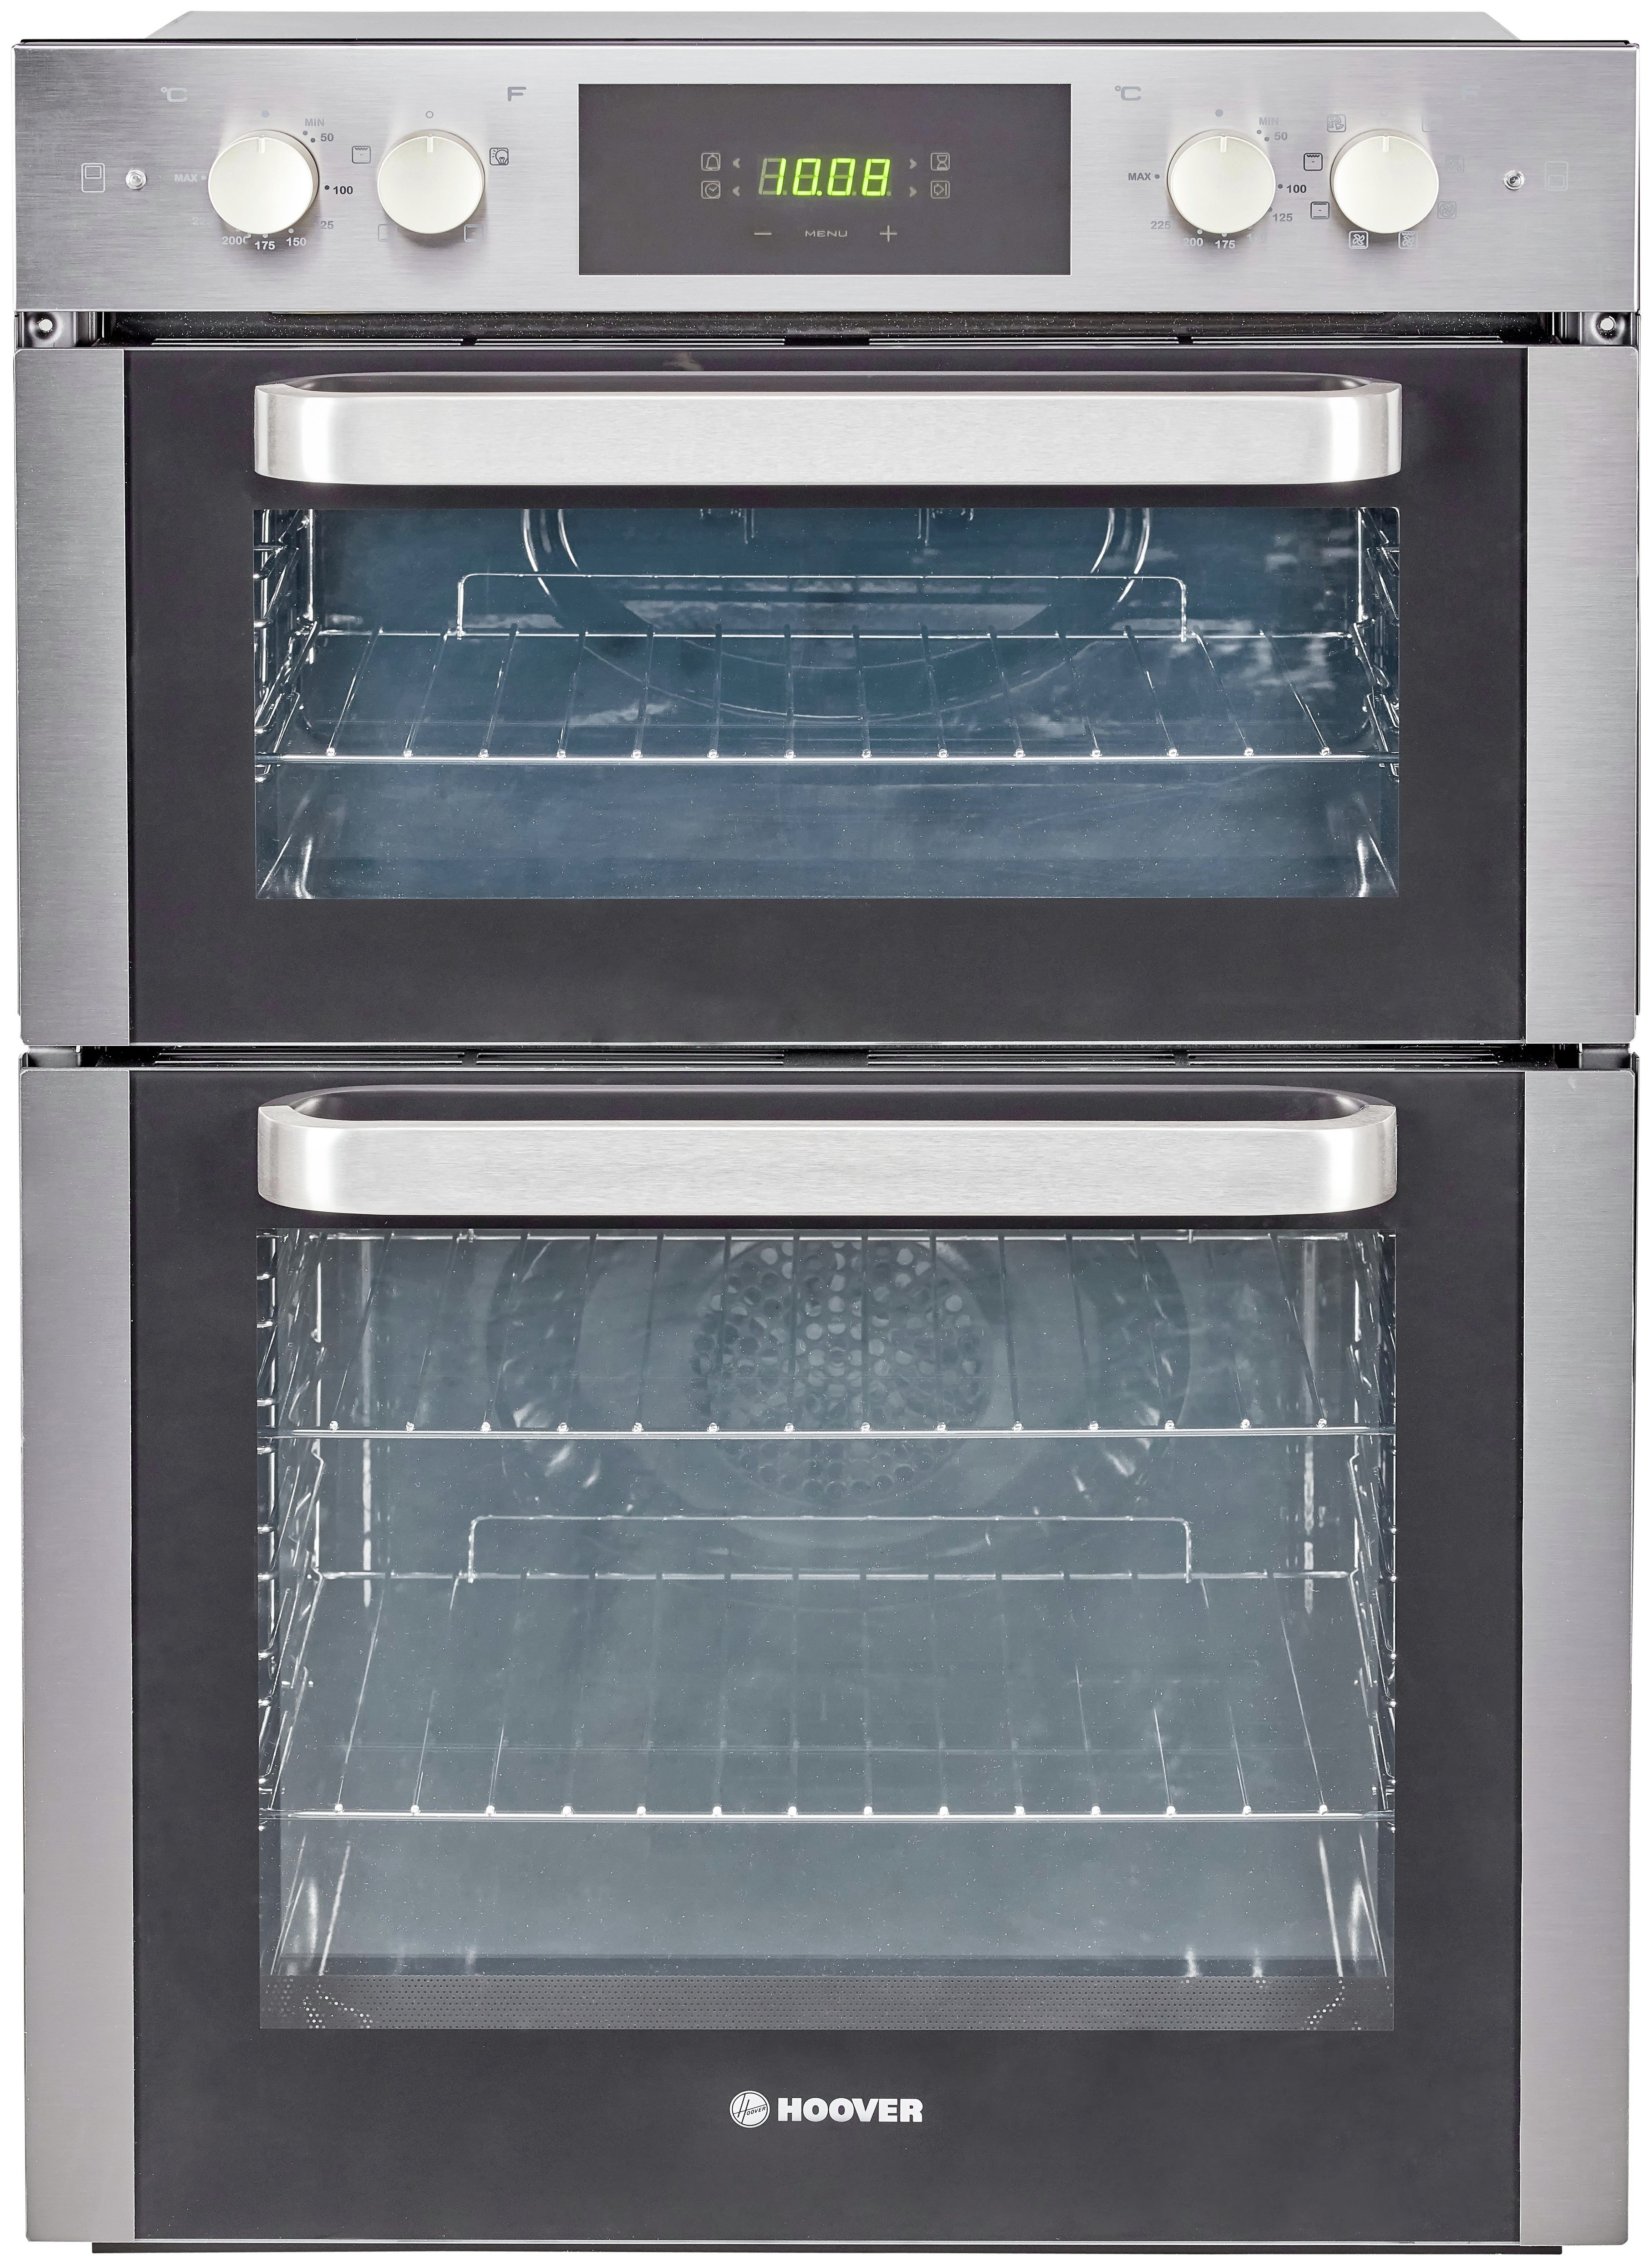 Hoover - HO9D337IN - Built-in - Double Electric Oven - S/Steel